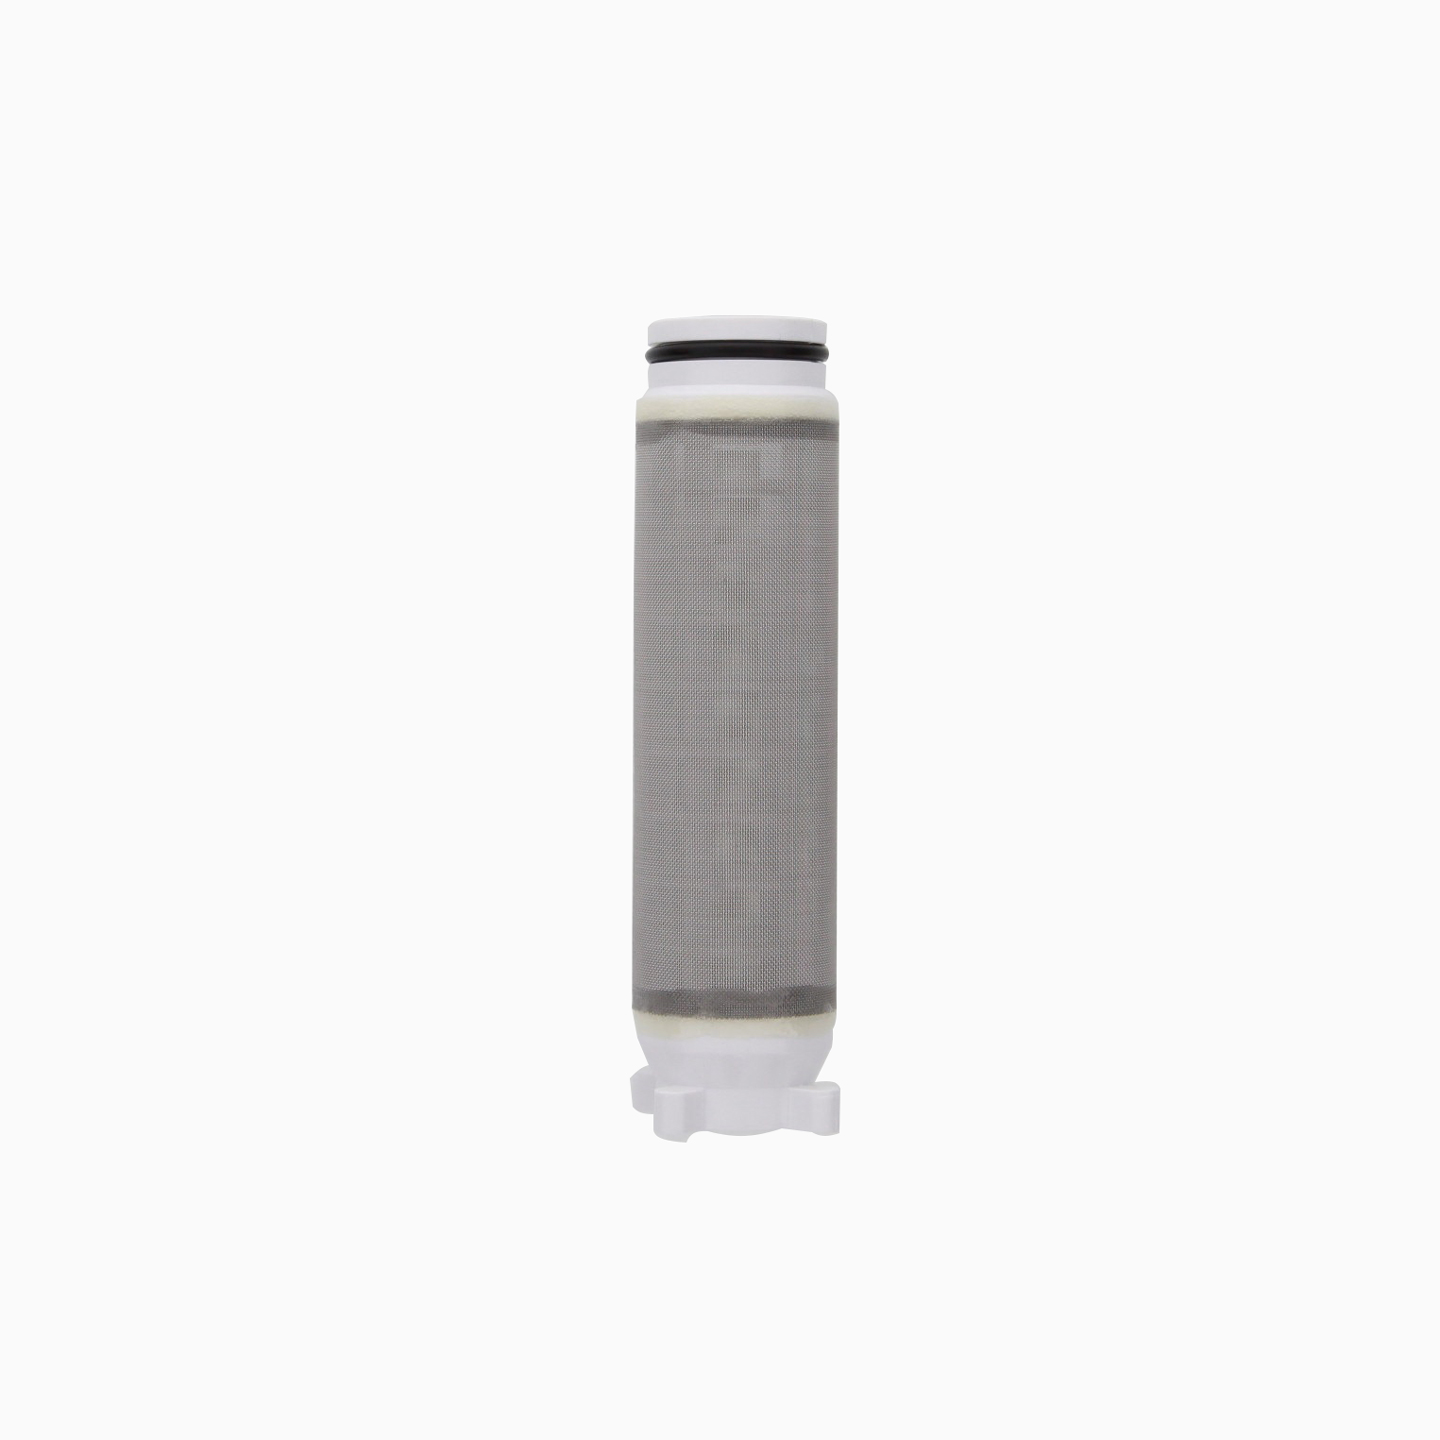 Rusco FS-1-60SS 60 Mesh 1 Inch Stainless Steel Spin Down Replacement Filter